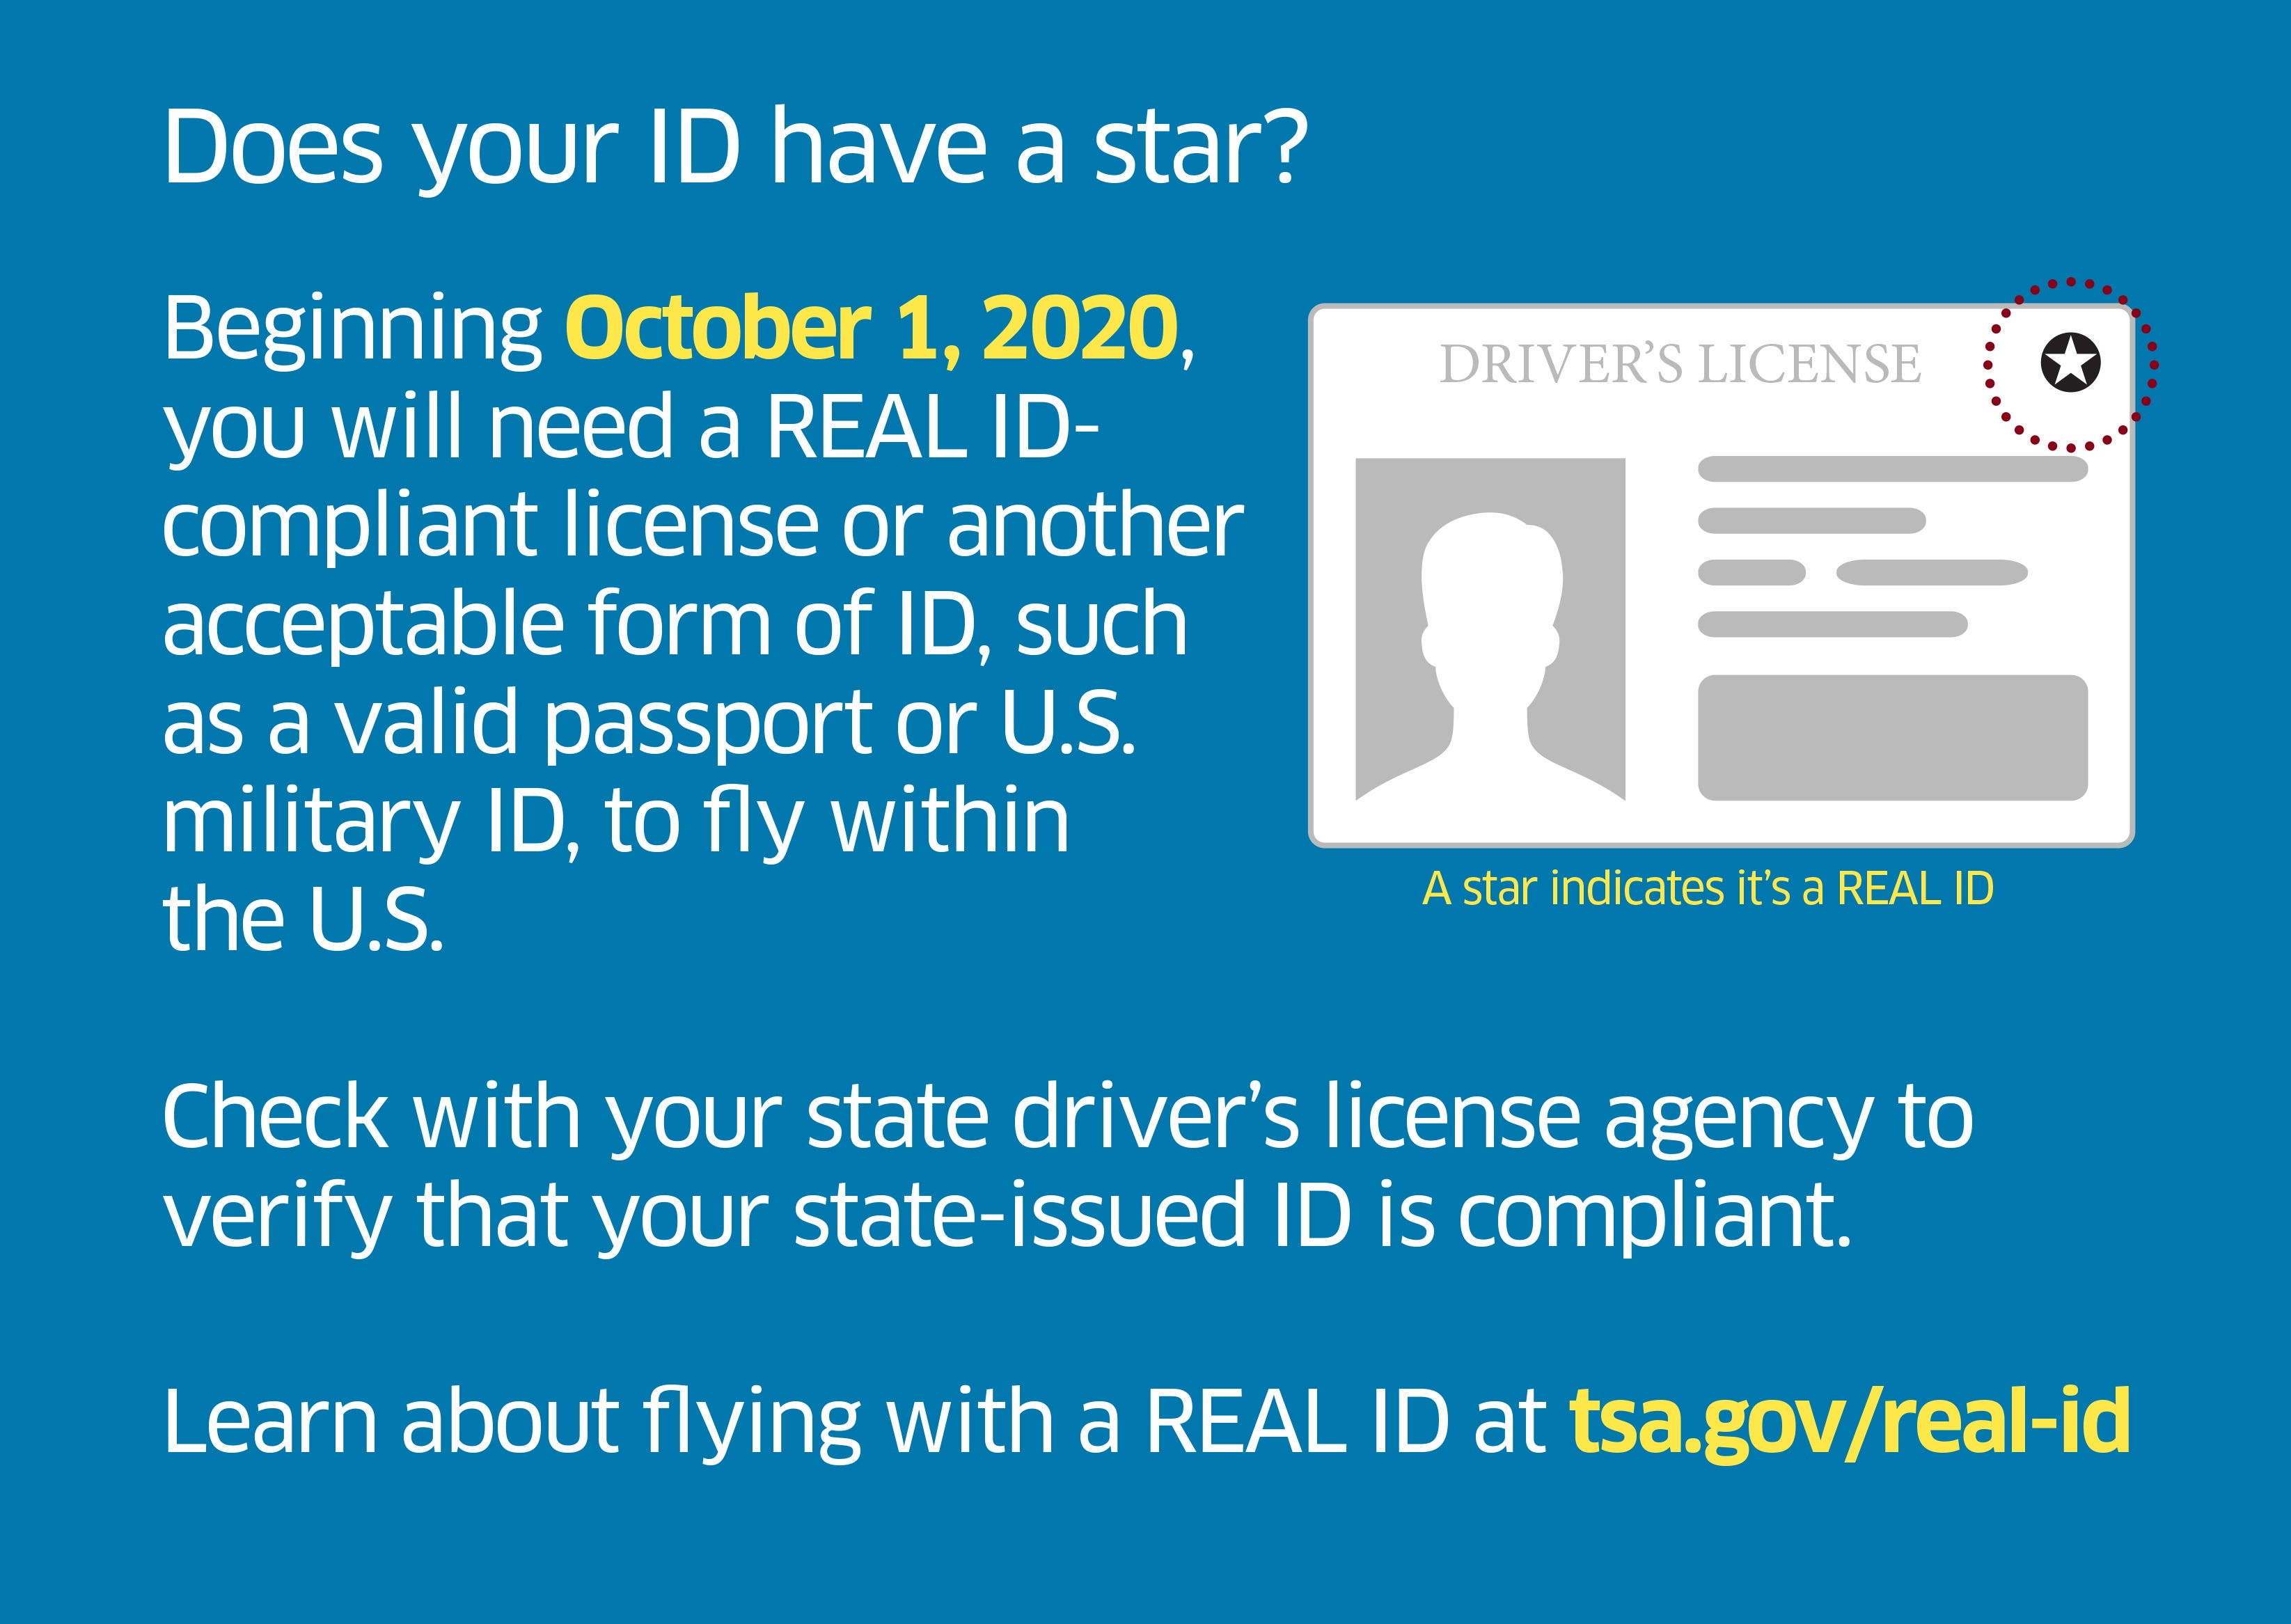 Still need a Real ID? Here's everything you need to know about the new deadline